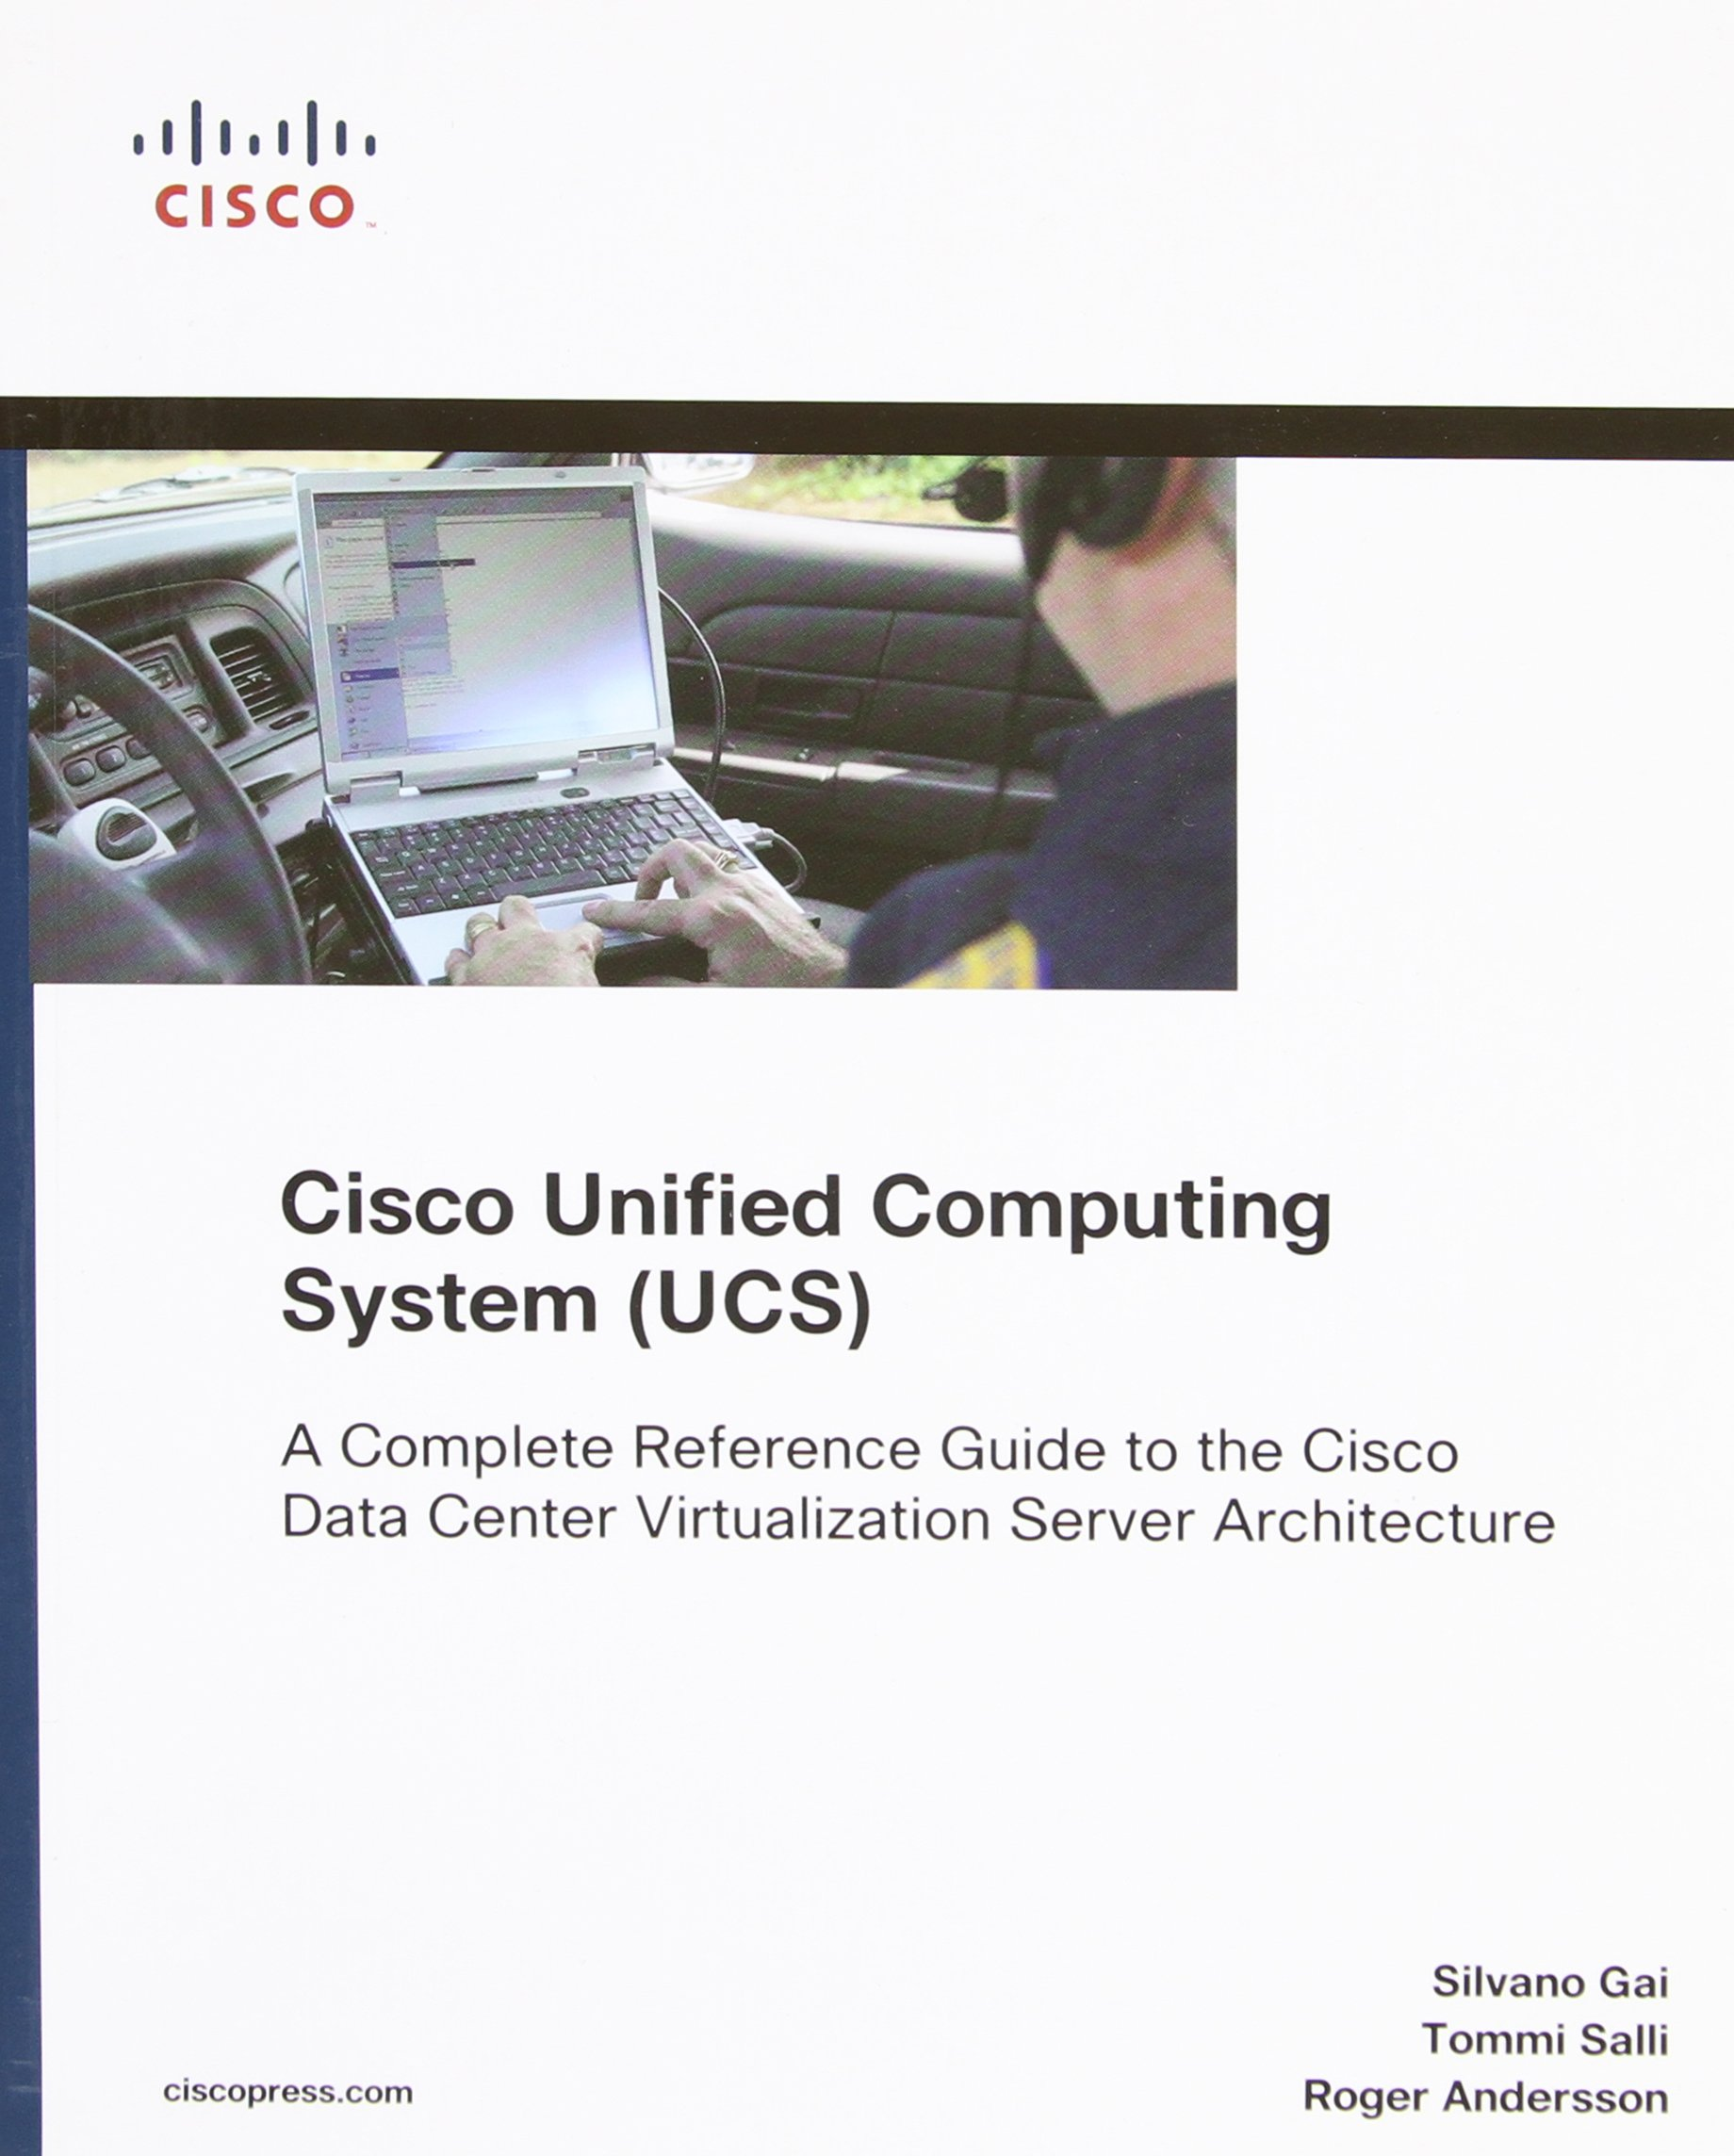 Image OfCisco Unified Computing System Ucs: A Complete Reference Guide To The Data Center Virtualization Server Architecture